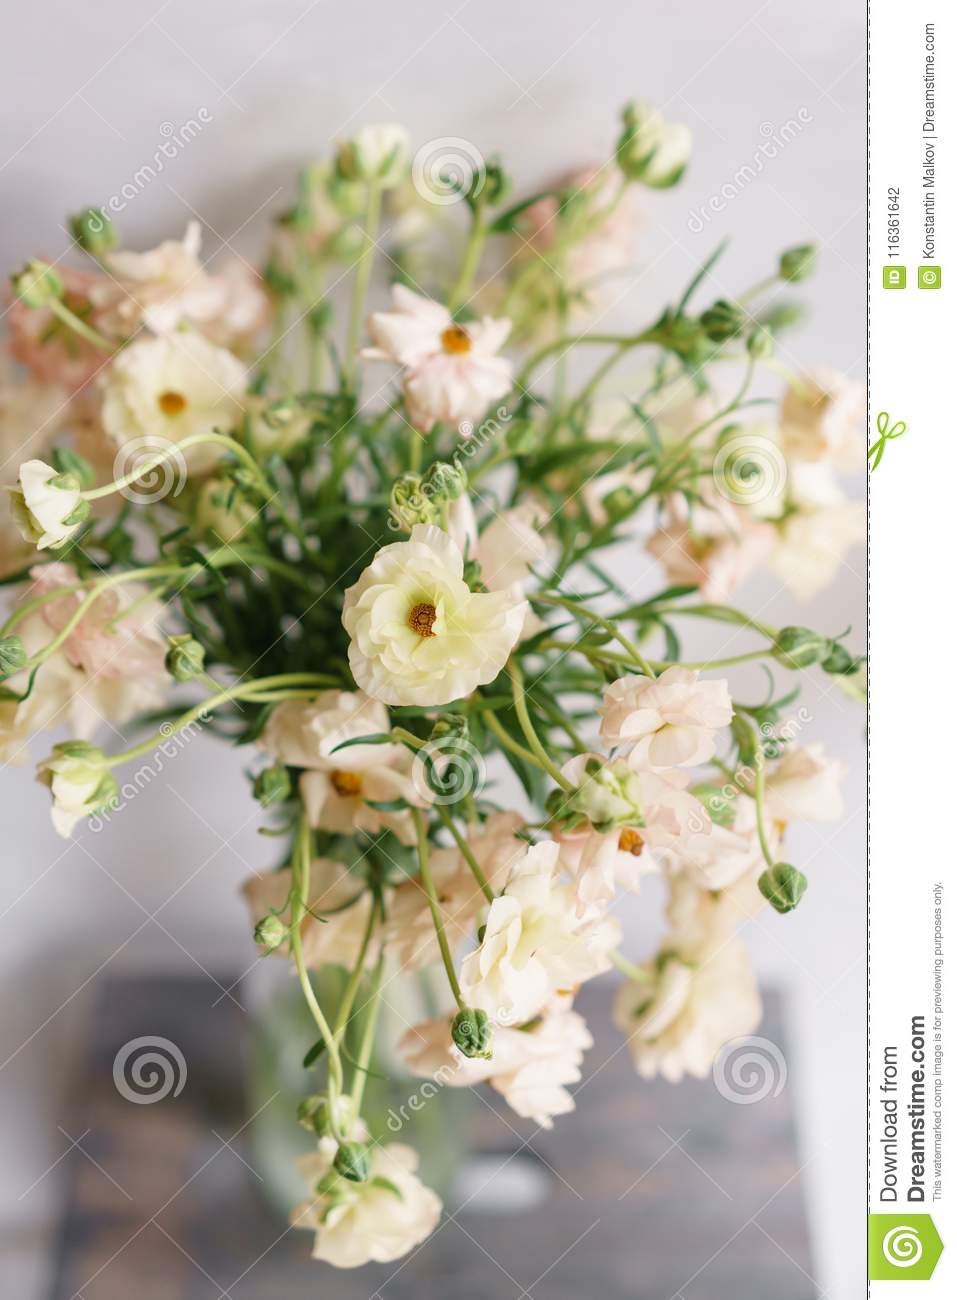 Beautiful Buttercups Bush Flowers In A Vase On A Table Bouquet Of